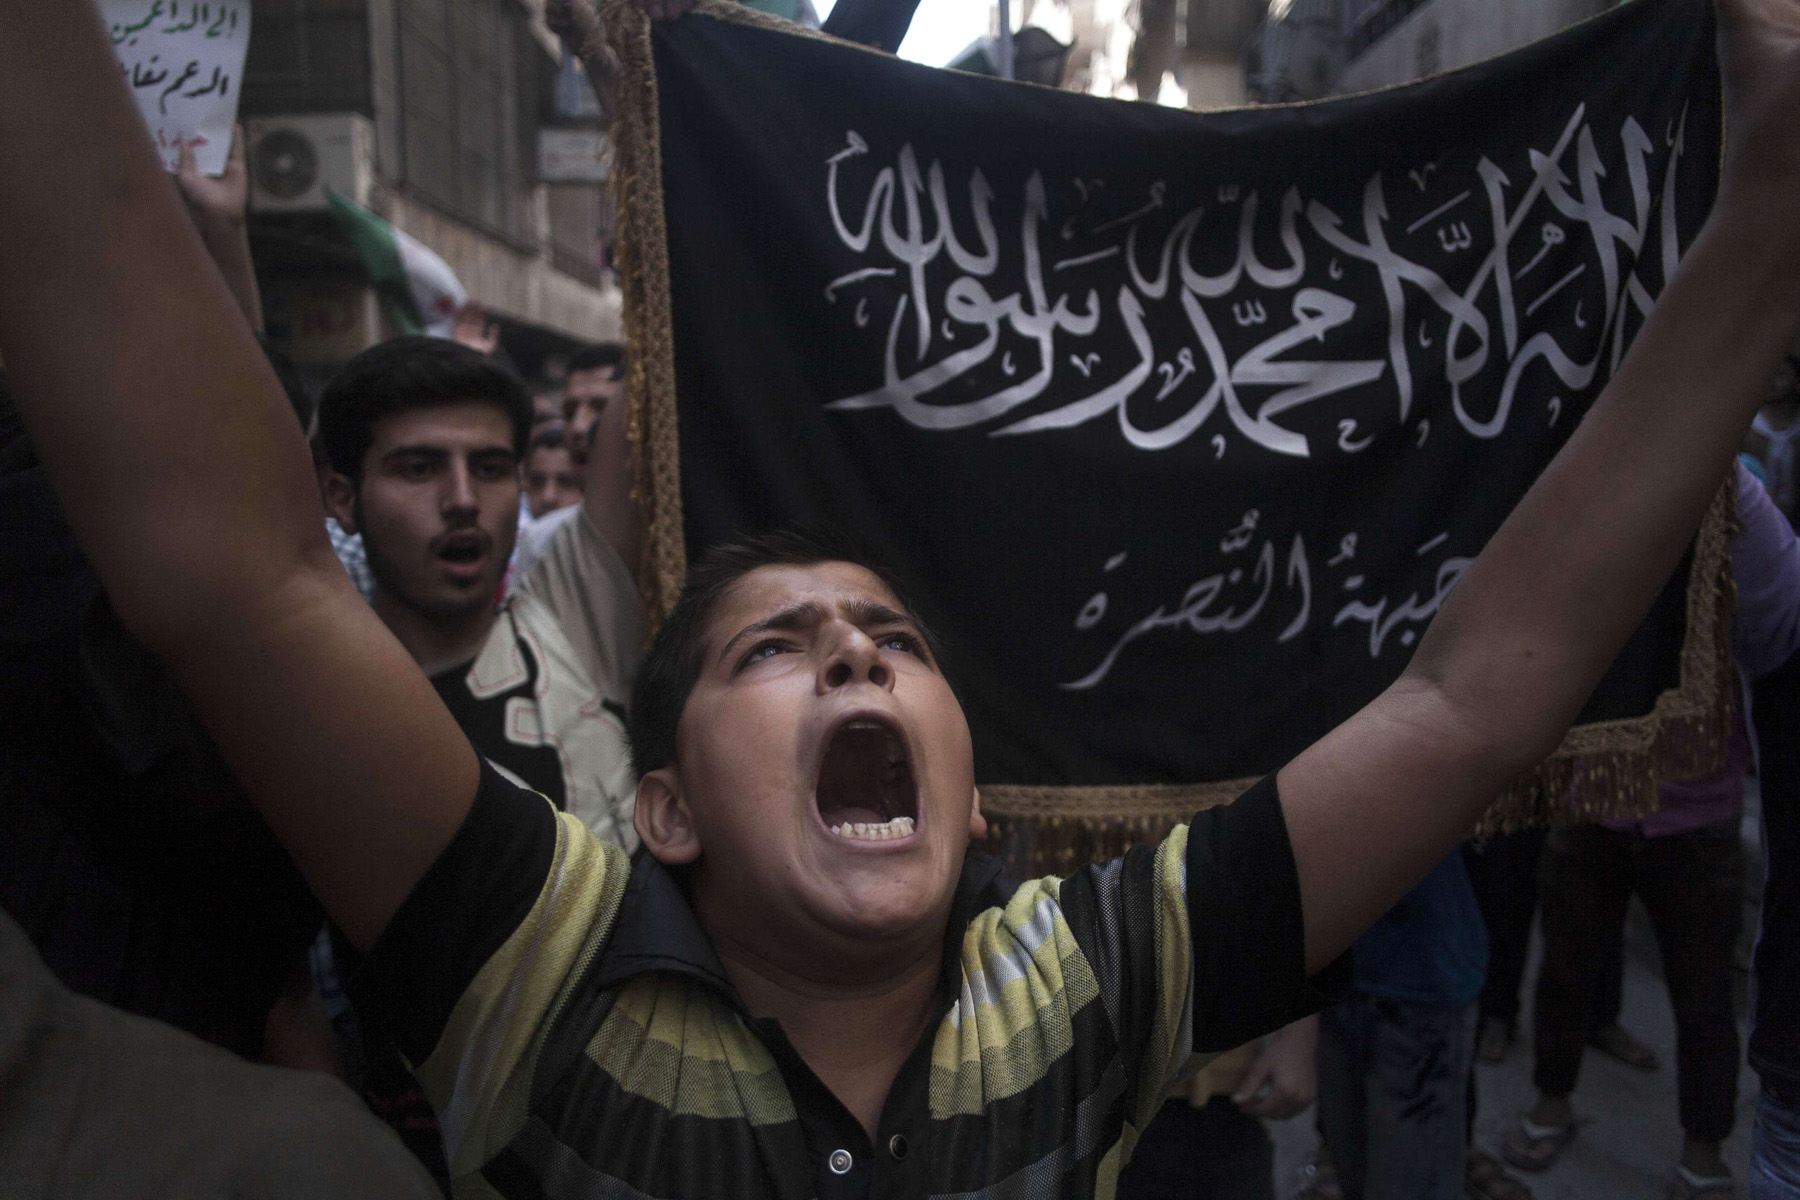 A Syrian boy shouts slogans against the Syrian government in front of a flag of the armed Islamic opposition group, the Nusra front, during a demonstration in Aleppo, Syria. (AP)